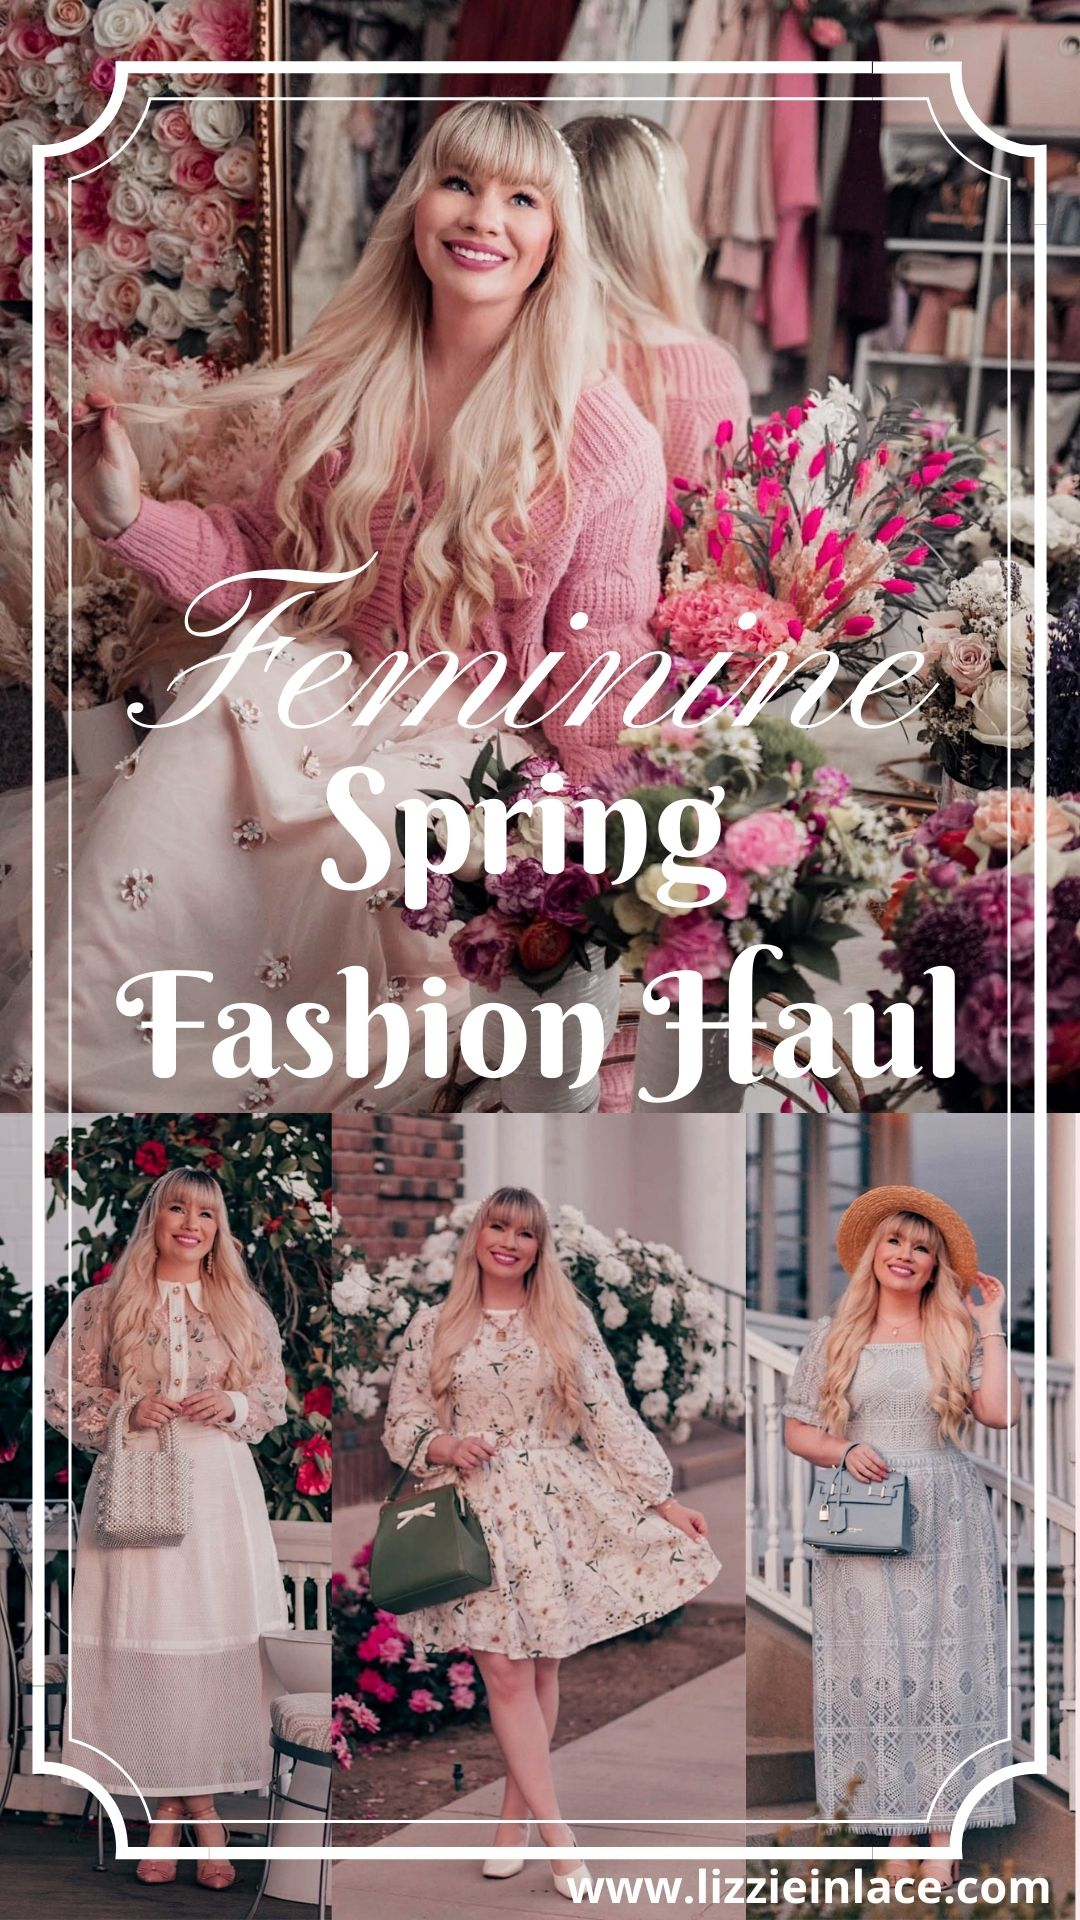 Fashion Blogger Elizabeth Hugen of Lizzie in Lace shares 5 Feminine Spring Outfits and a Girly Spring Fashion Haul